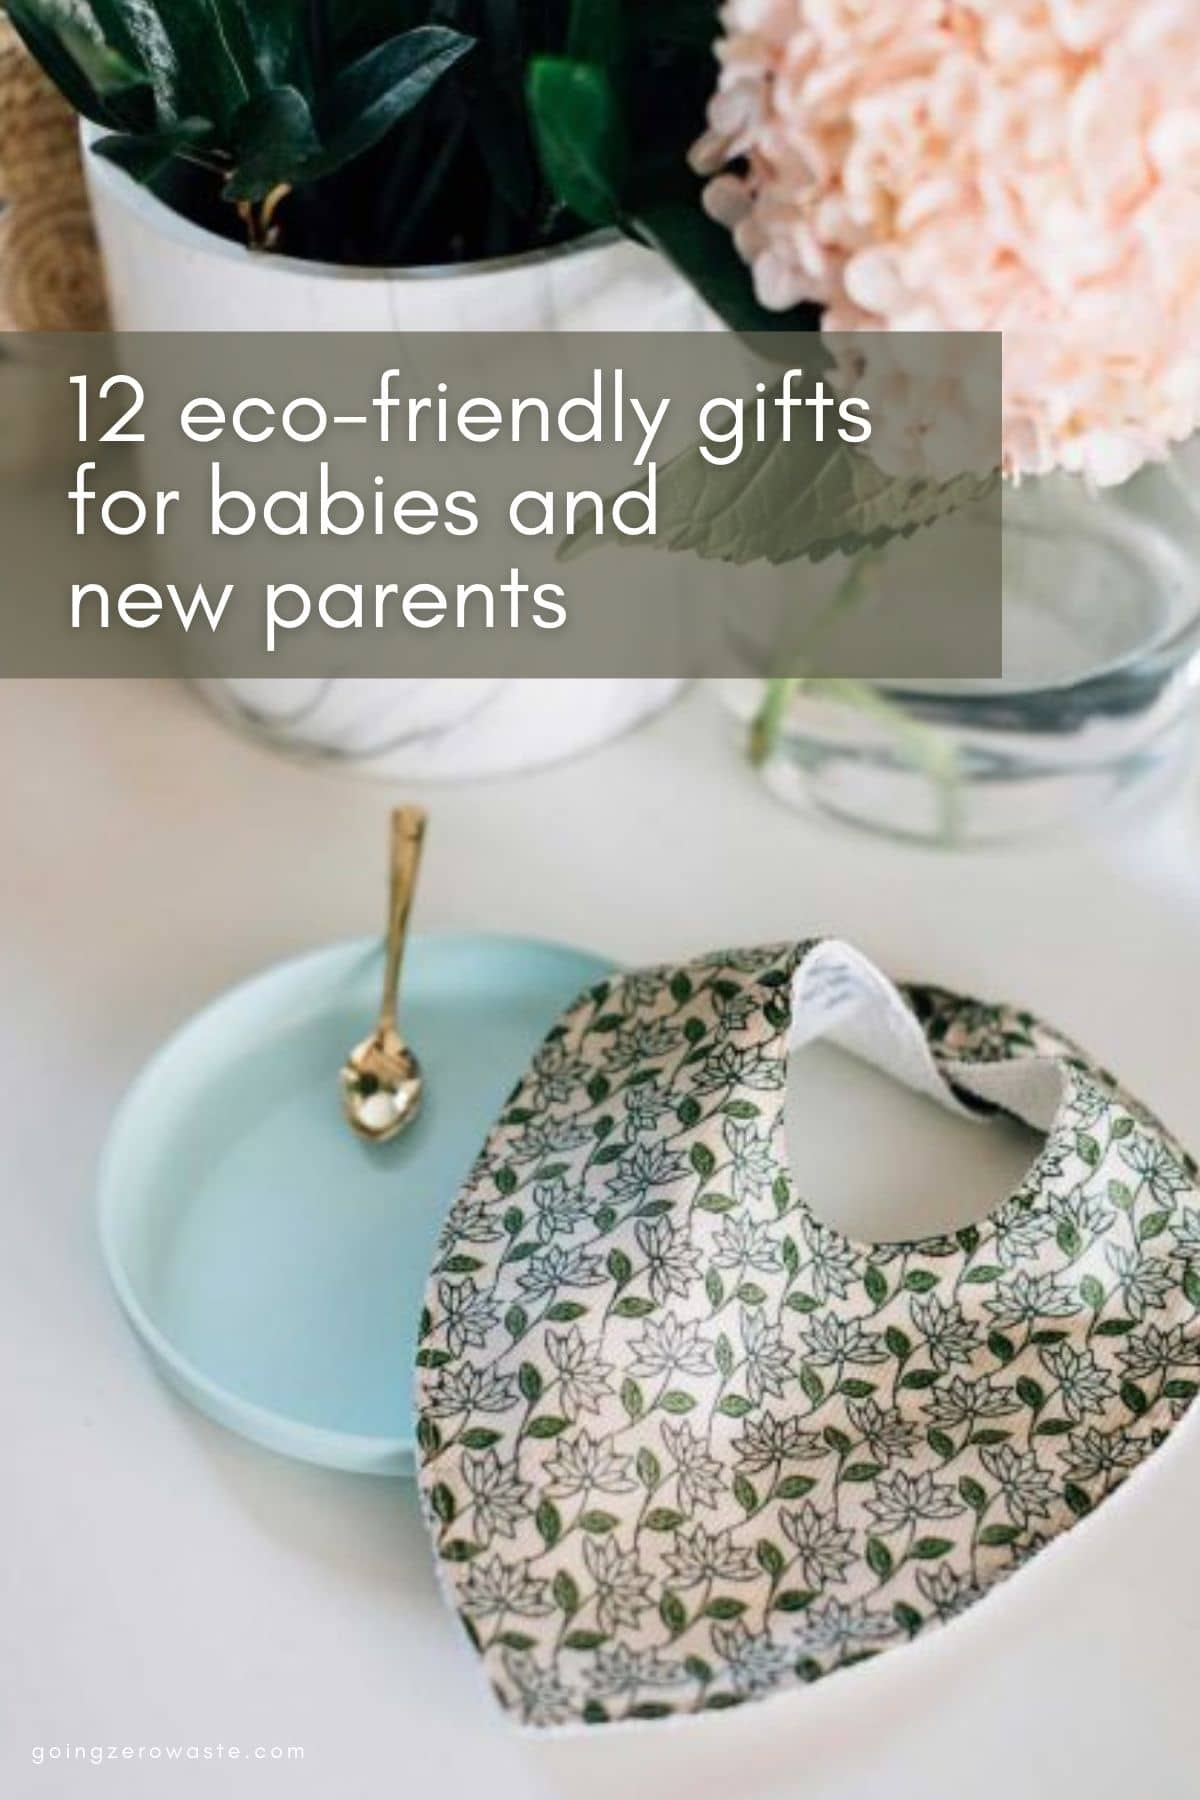 12 Eco-Friendly Gifts for Babies and New Parents